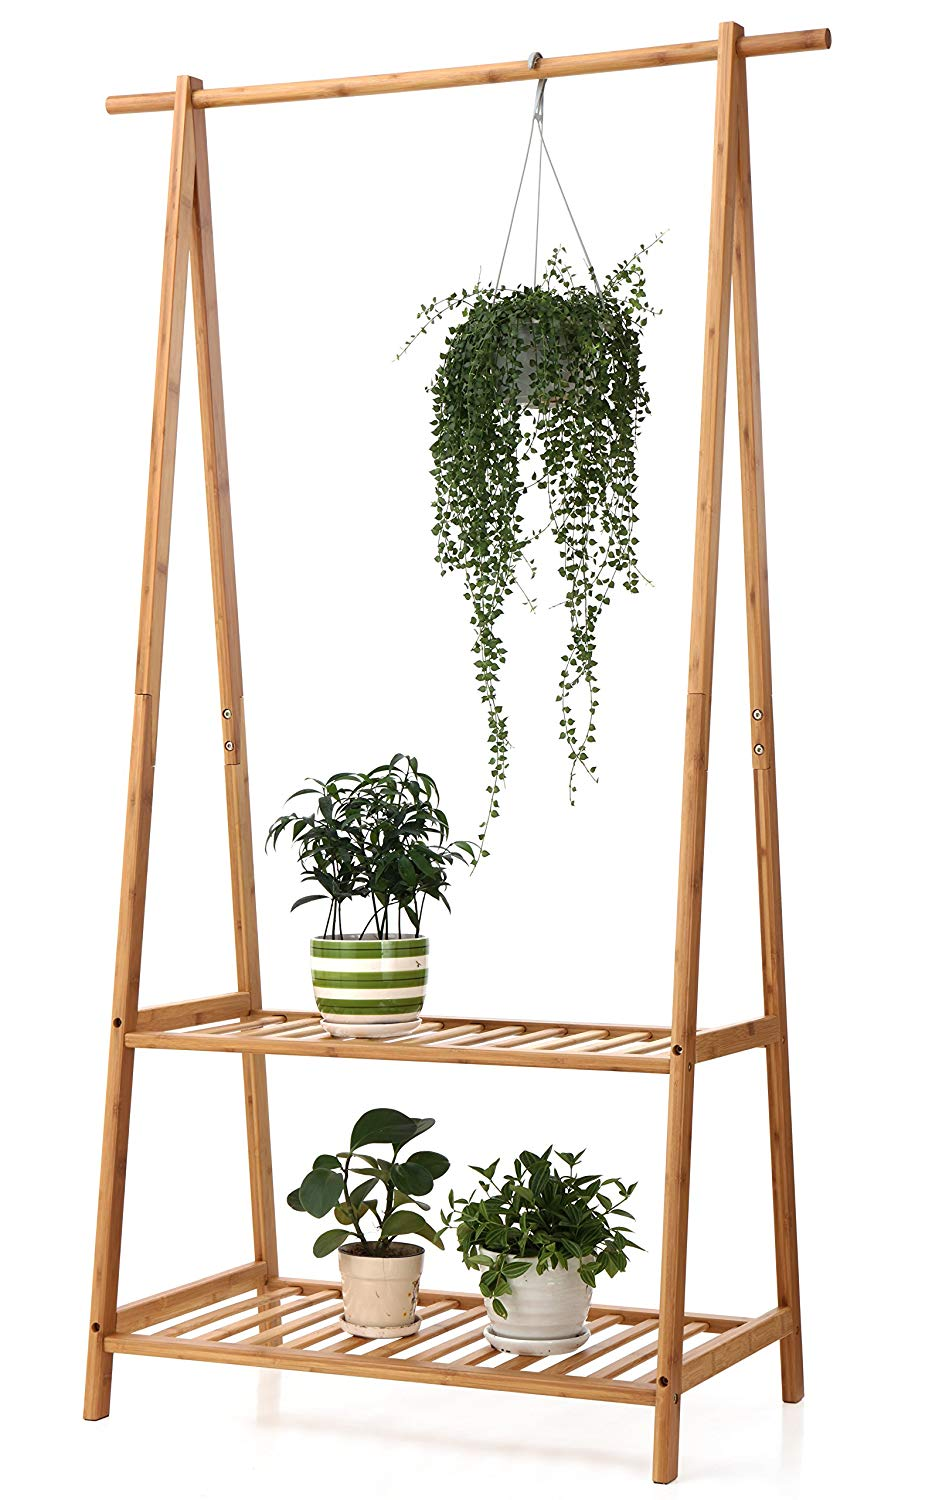 $45 - Bamboo Plant Stand | This little guy stores all of our misfit plants in the dining room. They stay very happy here :)